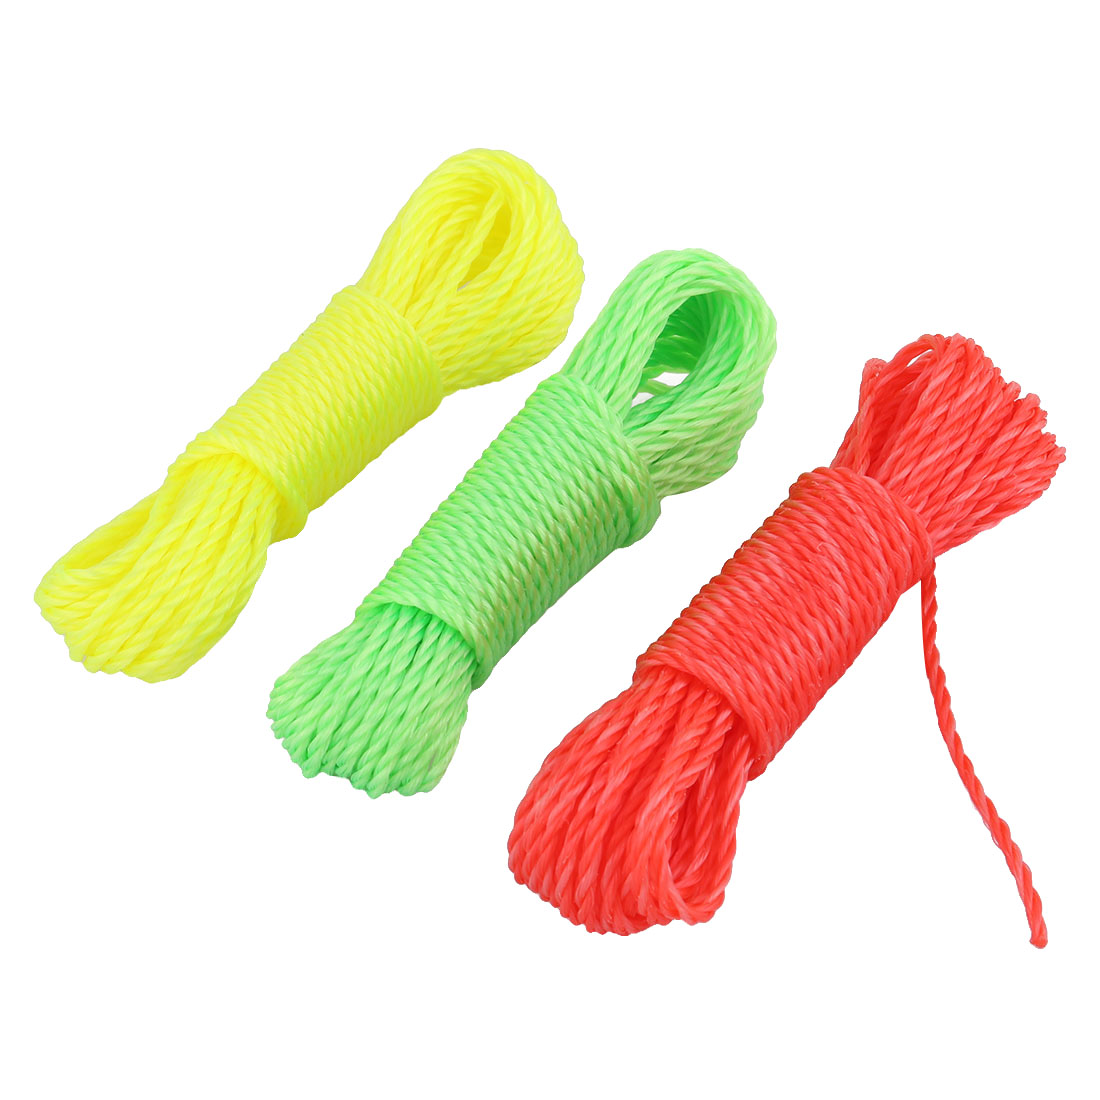 Outdoor Nylon Twisted String Clothesline Clothes Rope Assorted Color 10m 3 Pcs